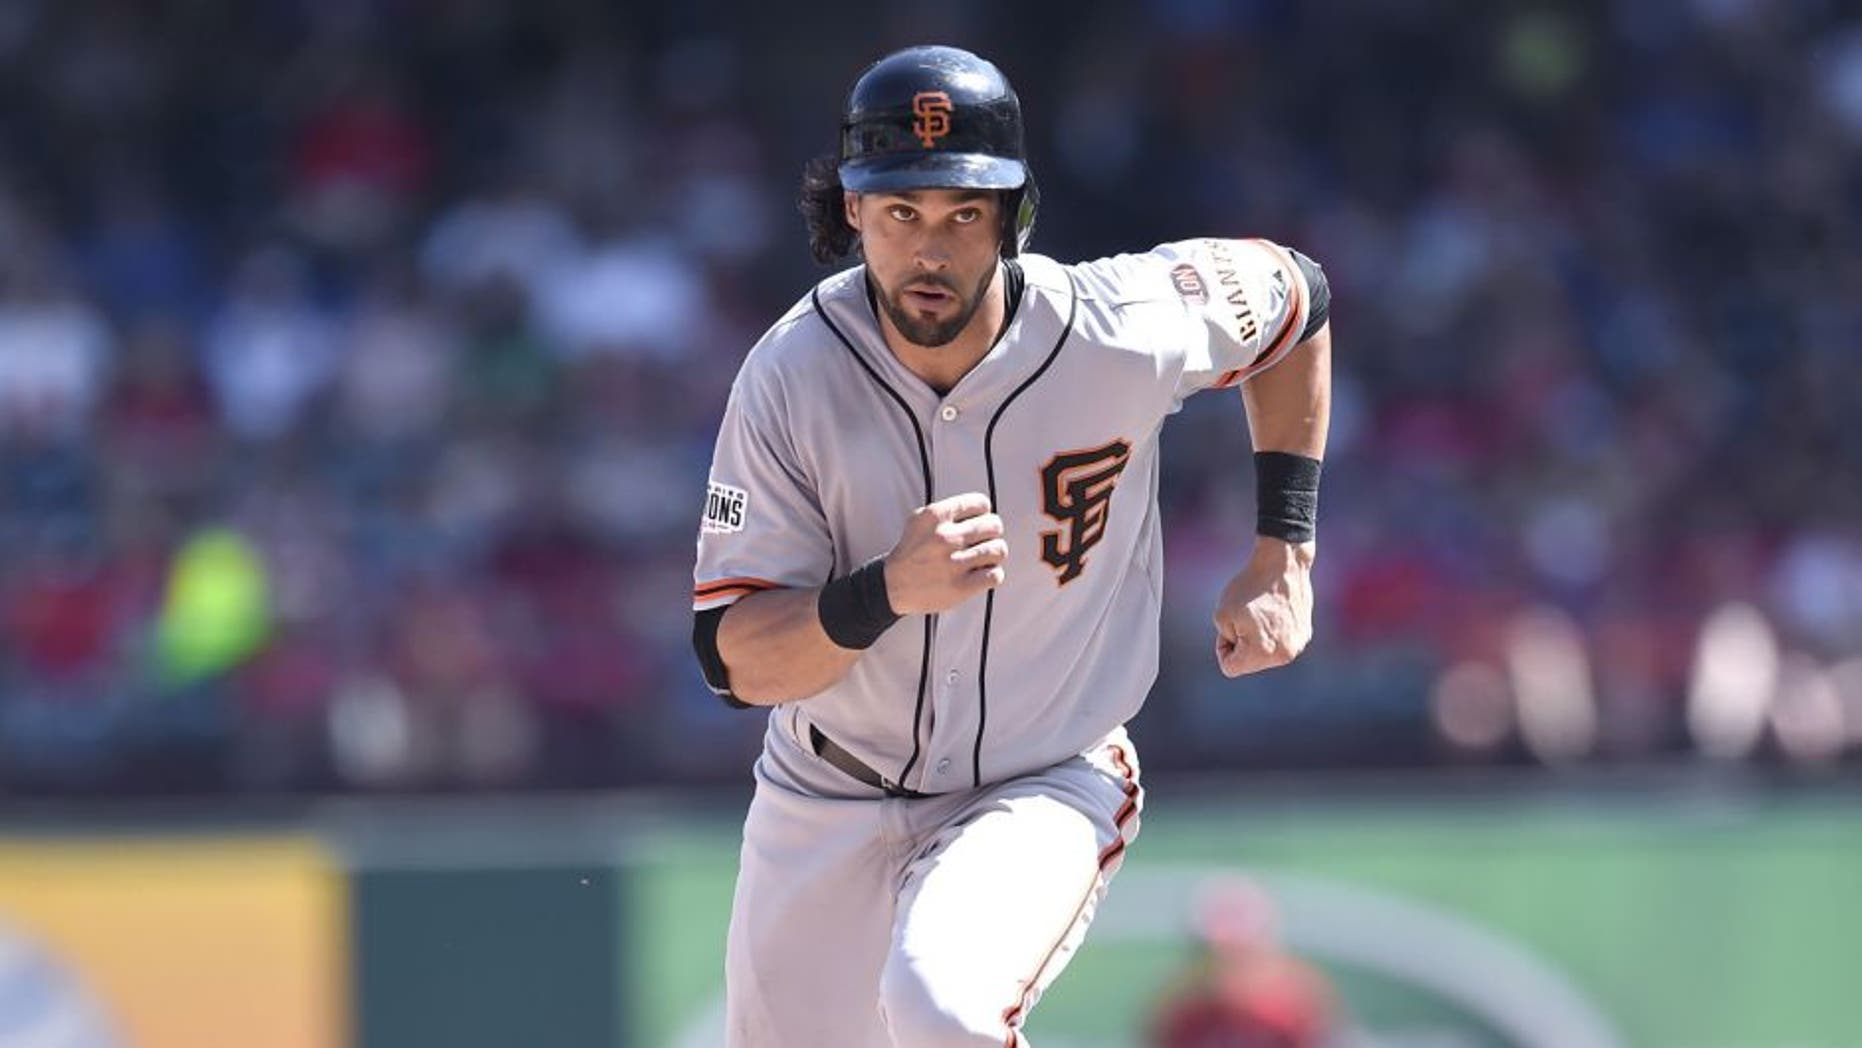 ARLINGTON, TX - AUGUST 02: Angel Pagan #16 of the San Francisco Giants runs the bases as he advances to third base in the game against the Texas Rangers at Globe Life Park in Arlington on August 2, 2015 in Arlington, Texas. The Texas Rangers defeated the San Francisco Giants 2-1. (Photo by John Williamson/MLB Photos via Getty Images)